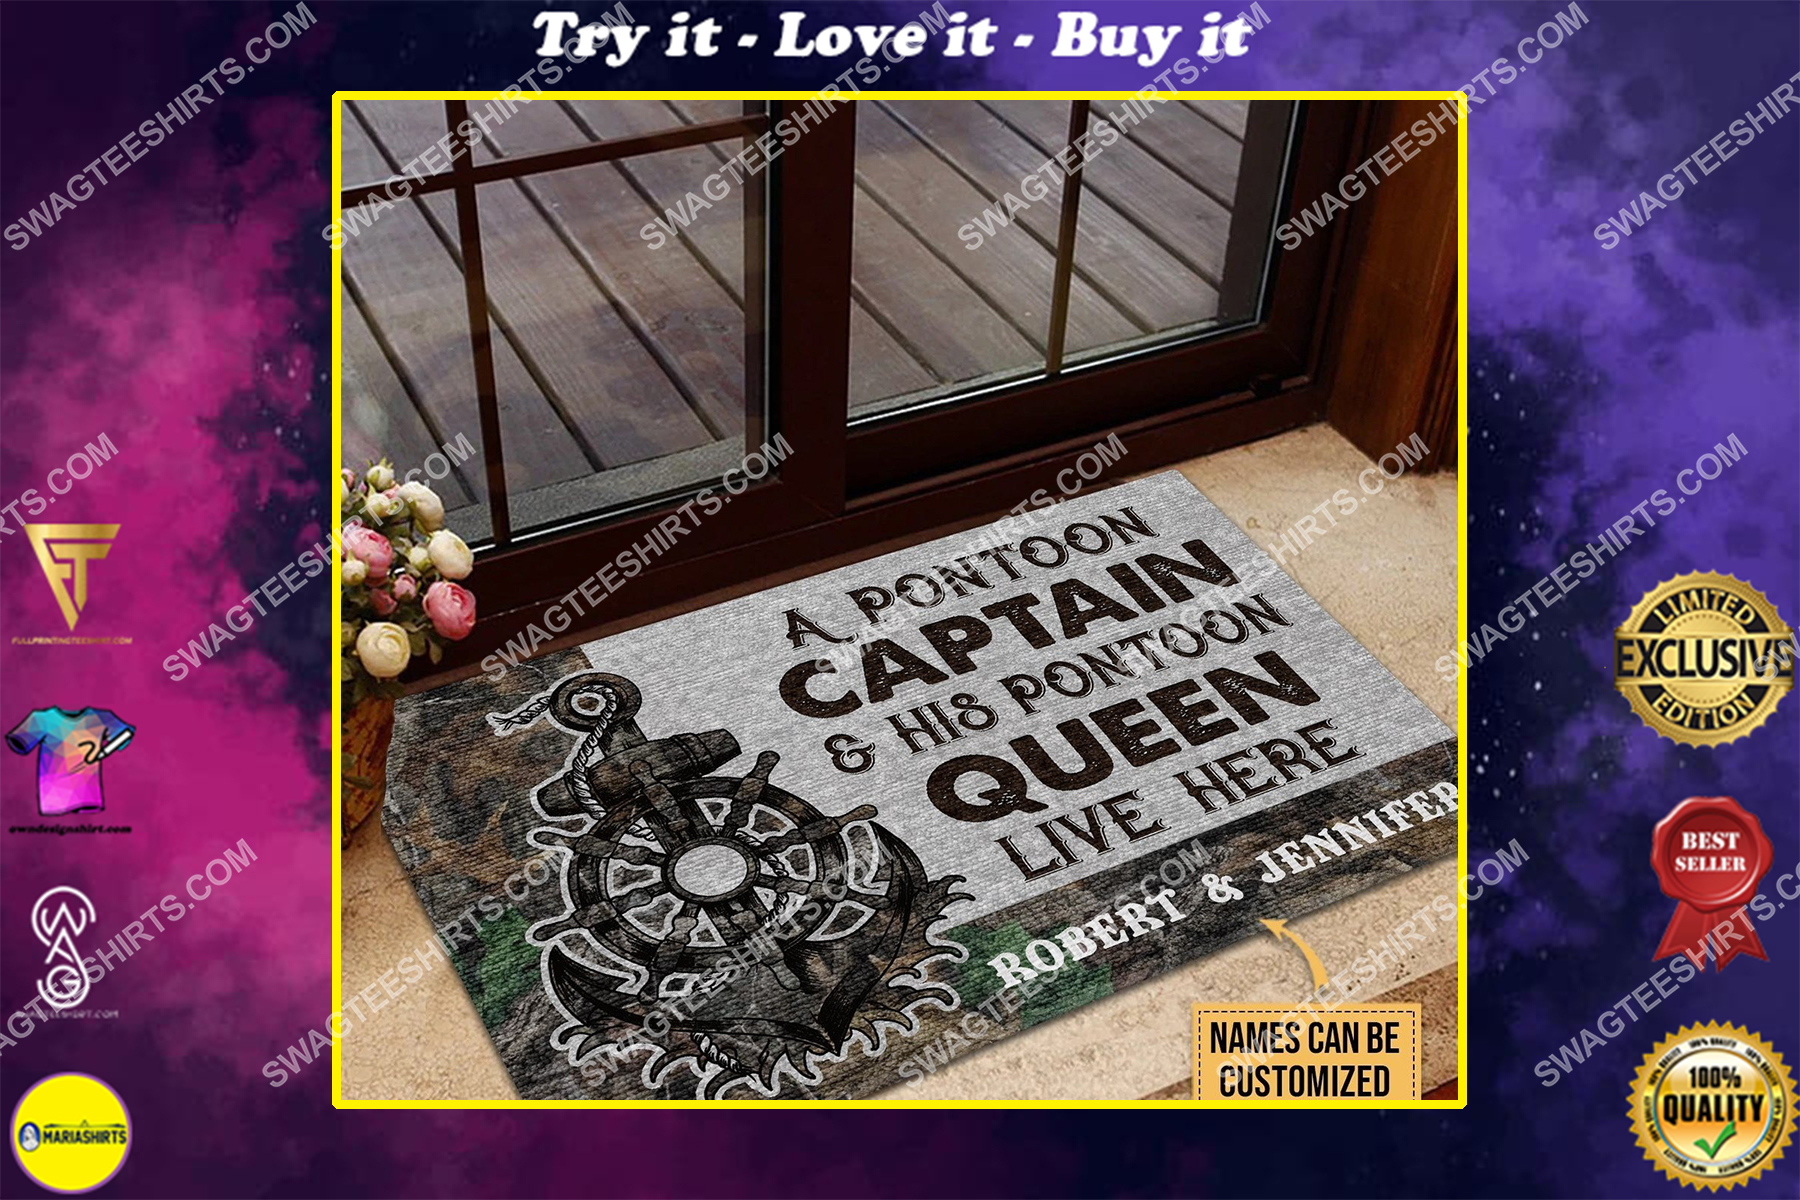 custom name a pontoon captain and his pontoon queen live here full print doormat